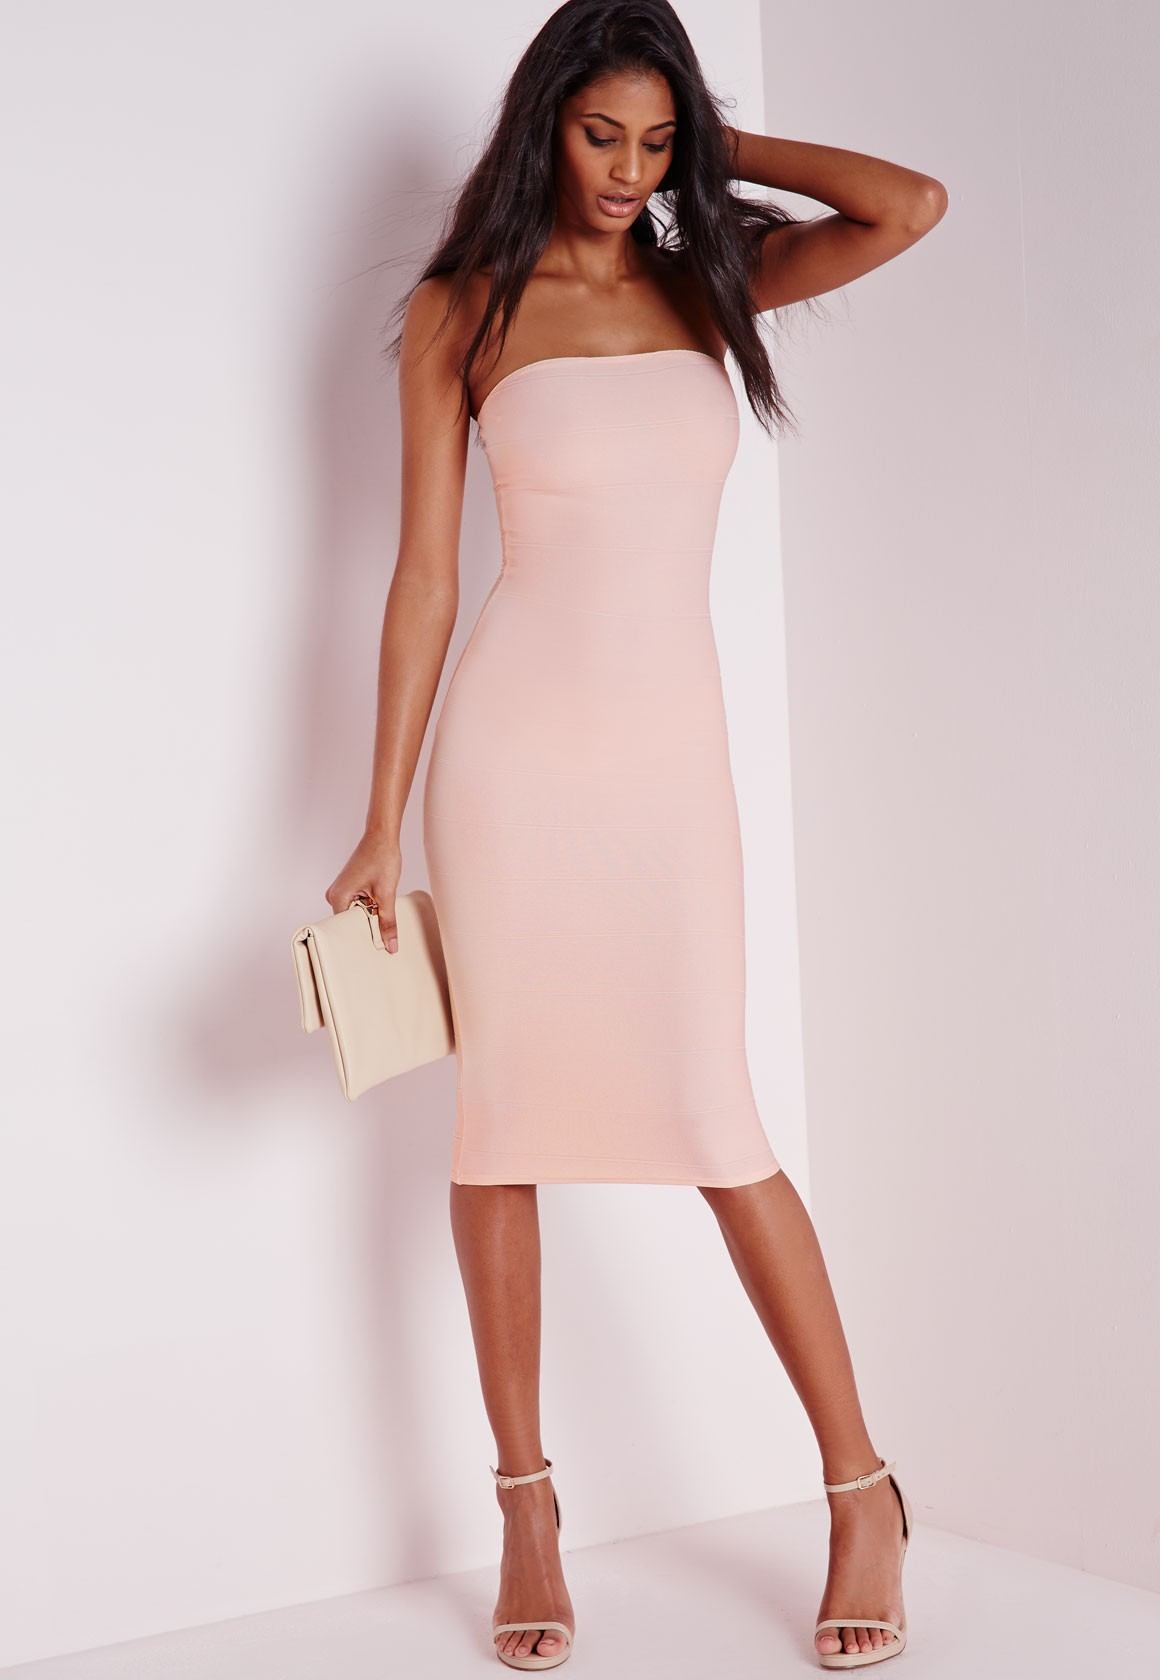 White Bodycon Halter Dress Make You Look Thinner Dresses Ask